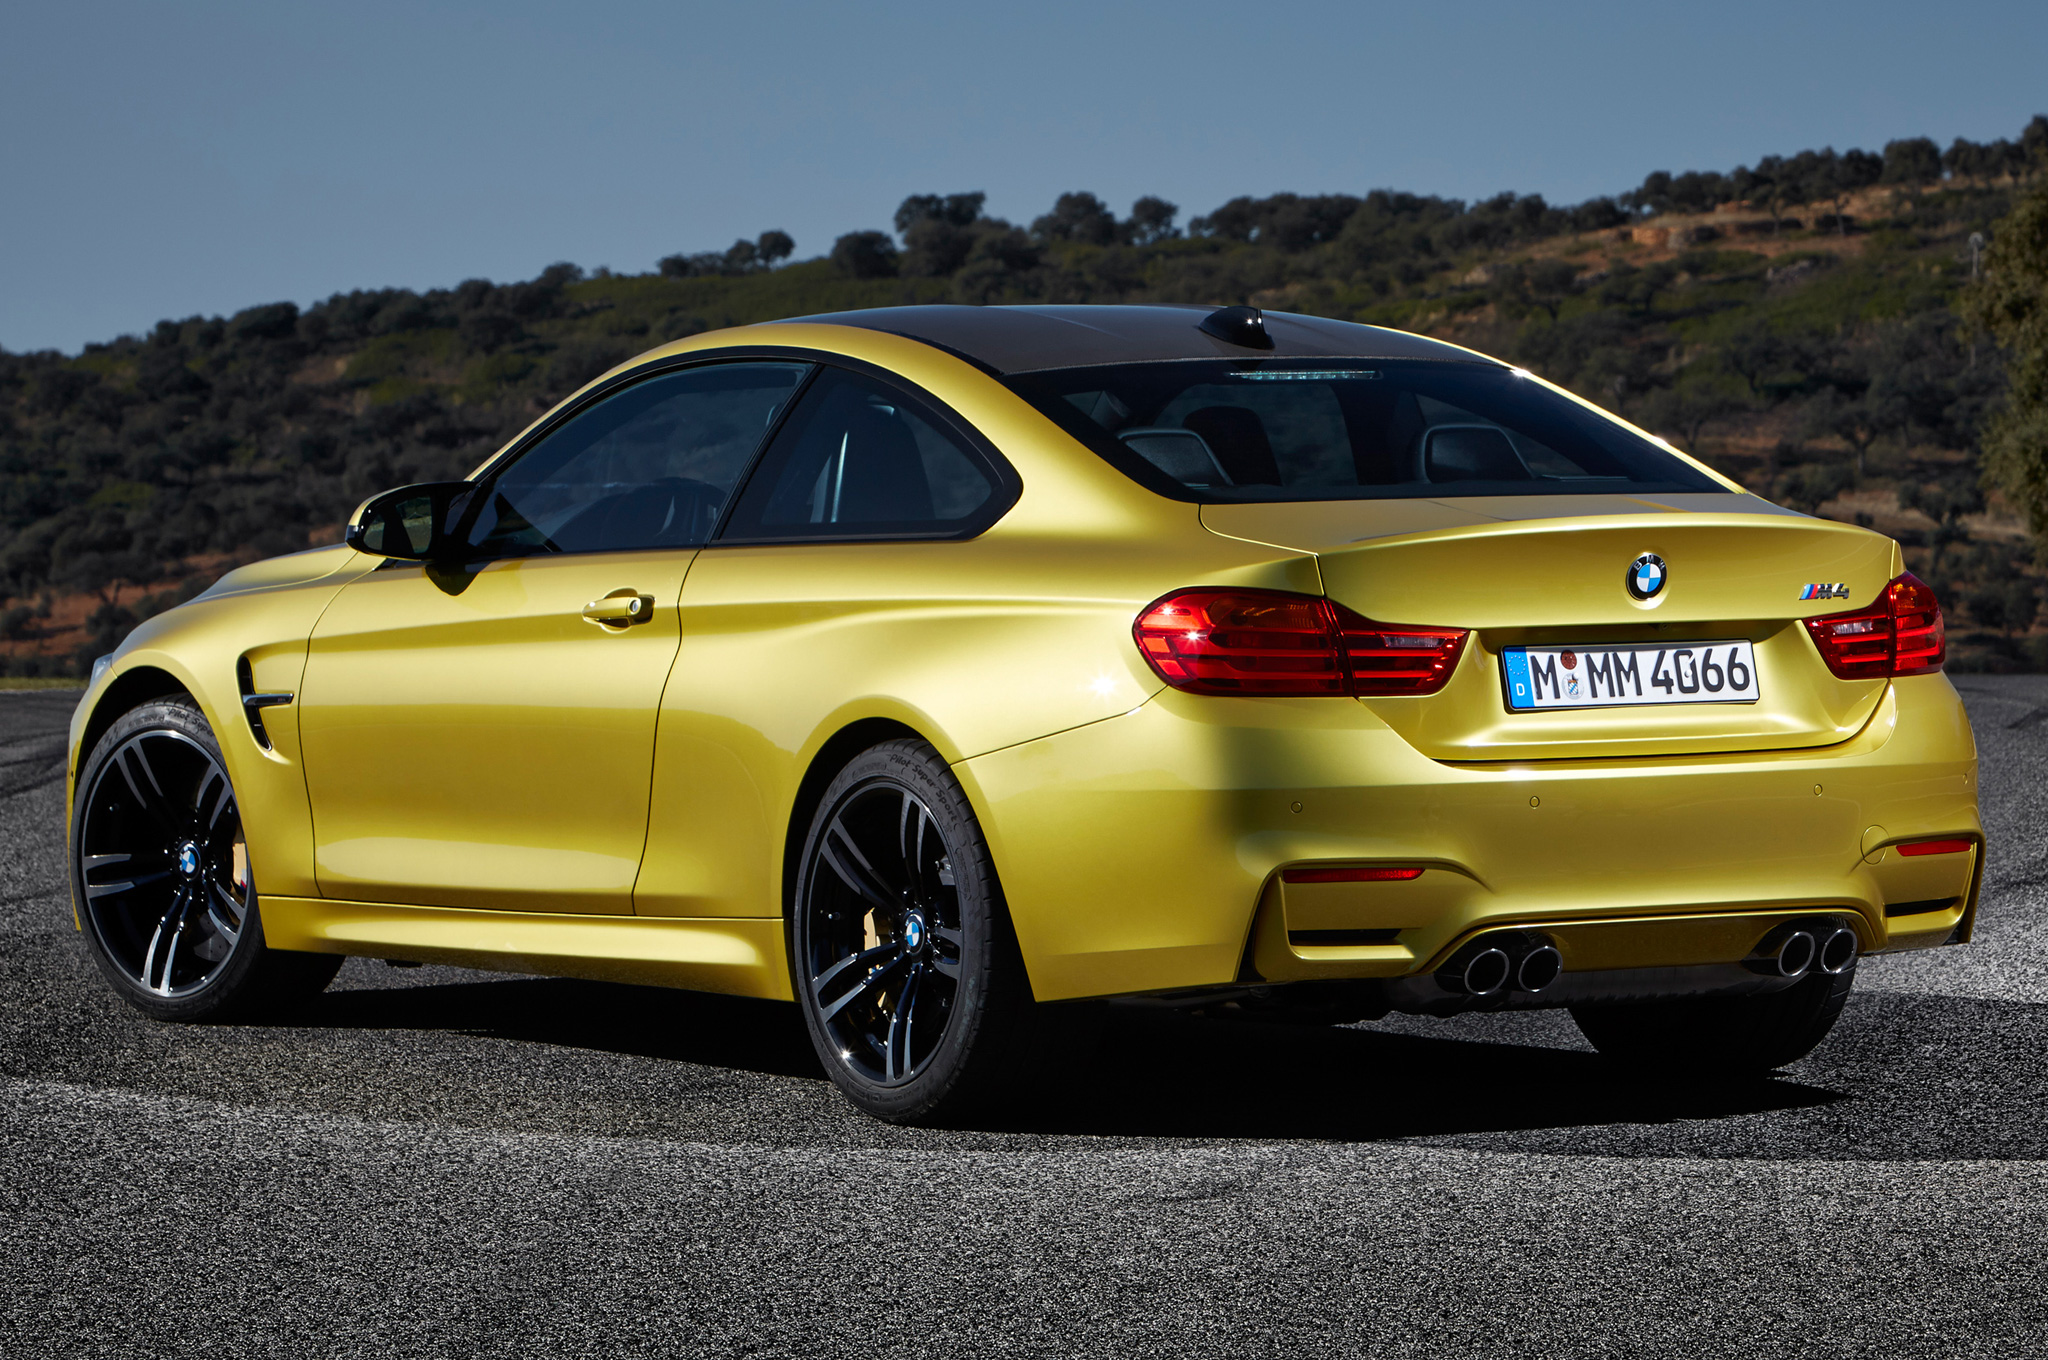 2015 Bmw M4 Exterior View (Photo 4 of 41)